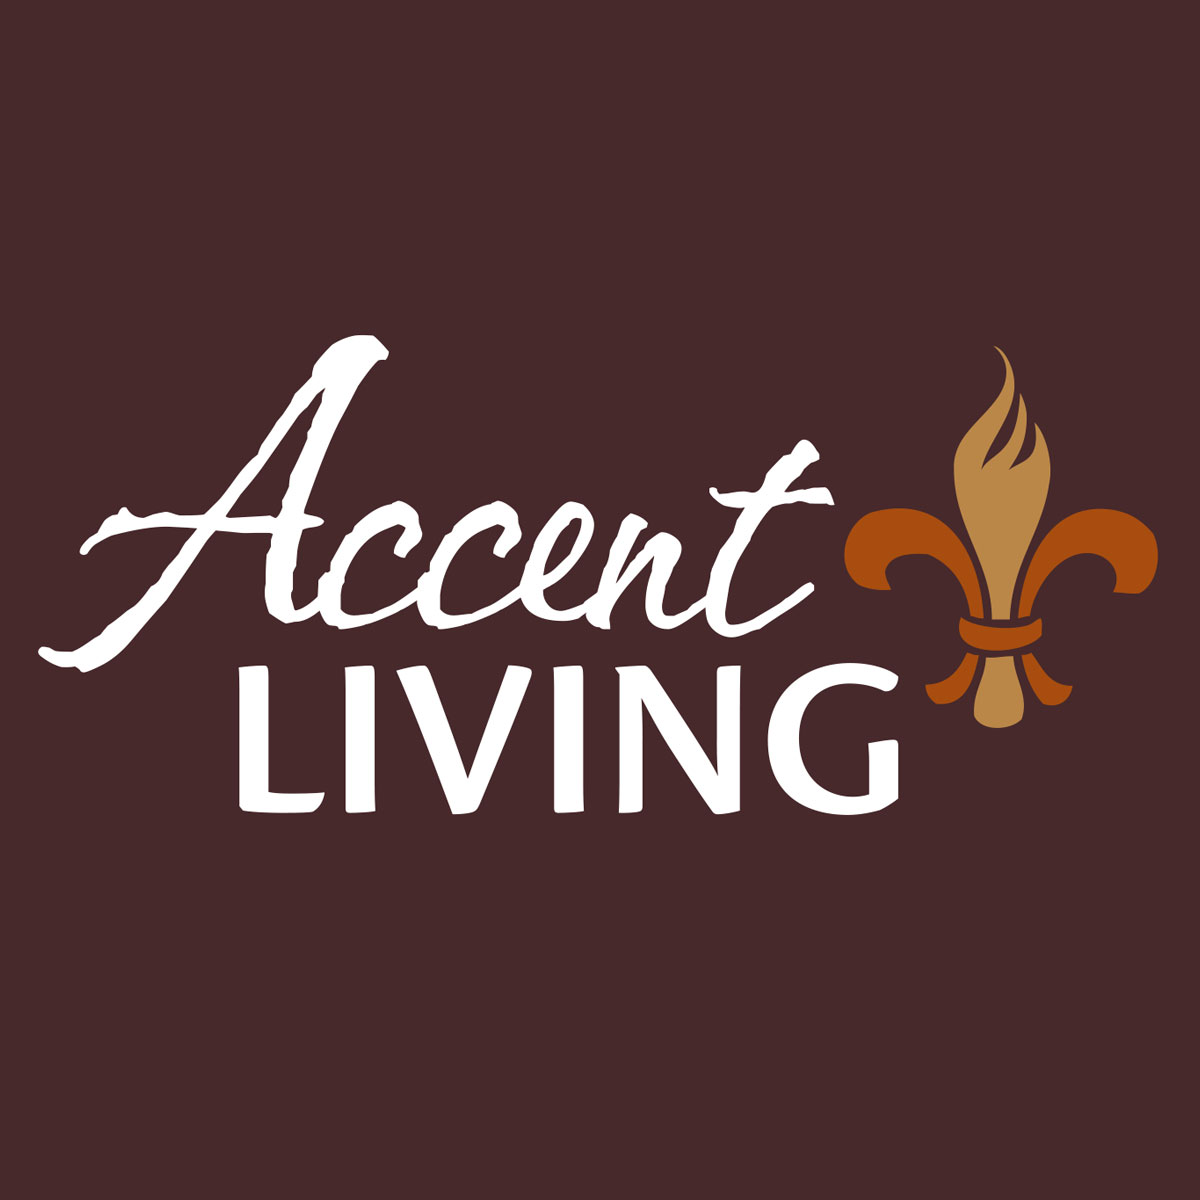 Accent Living logo